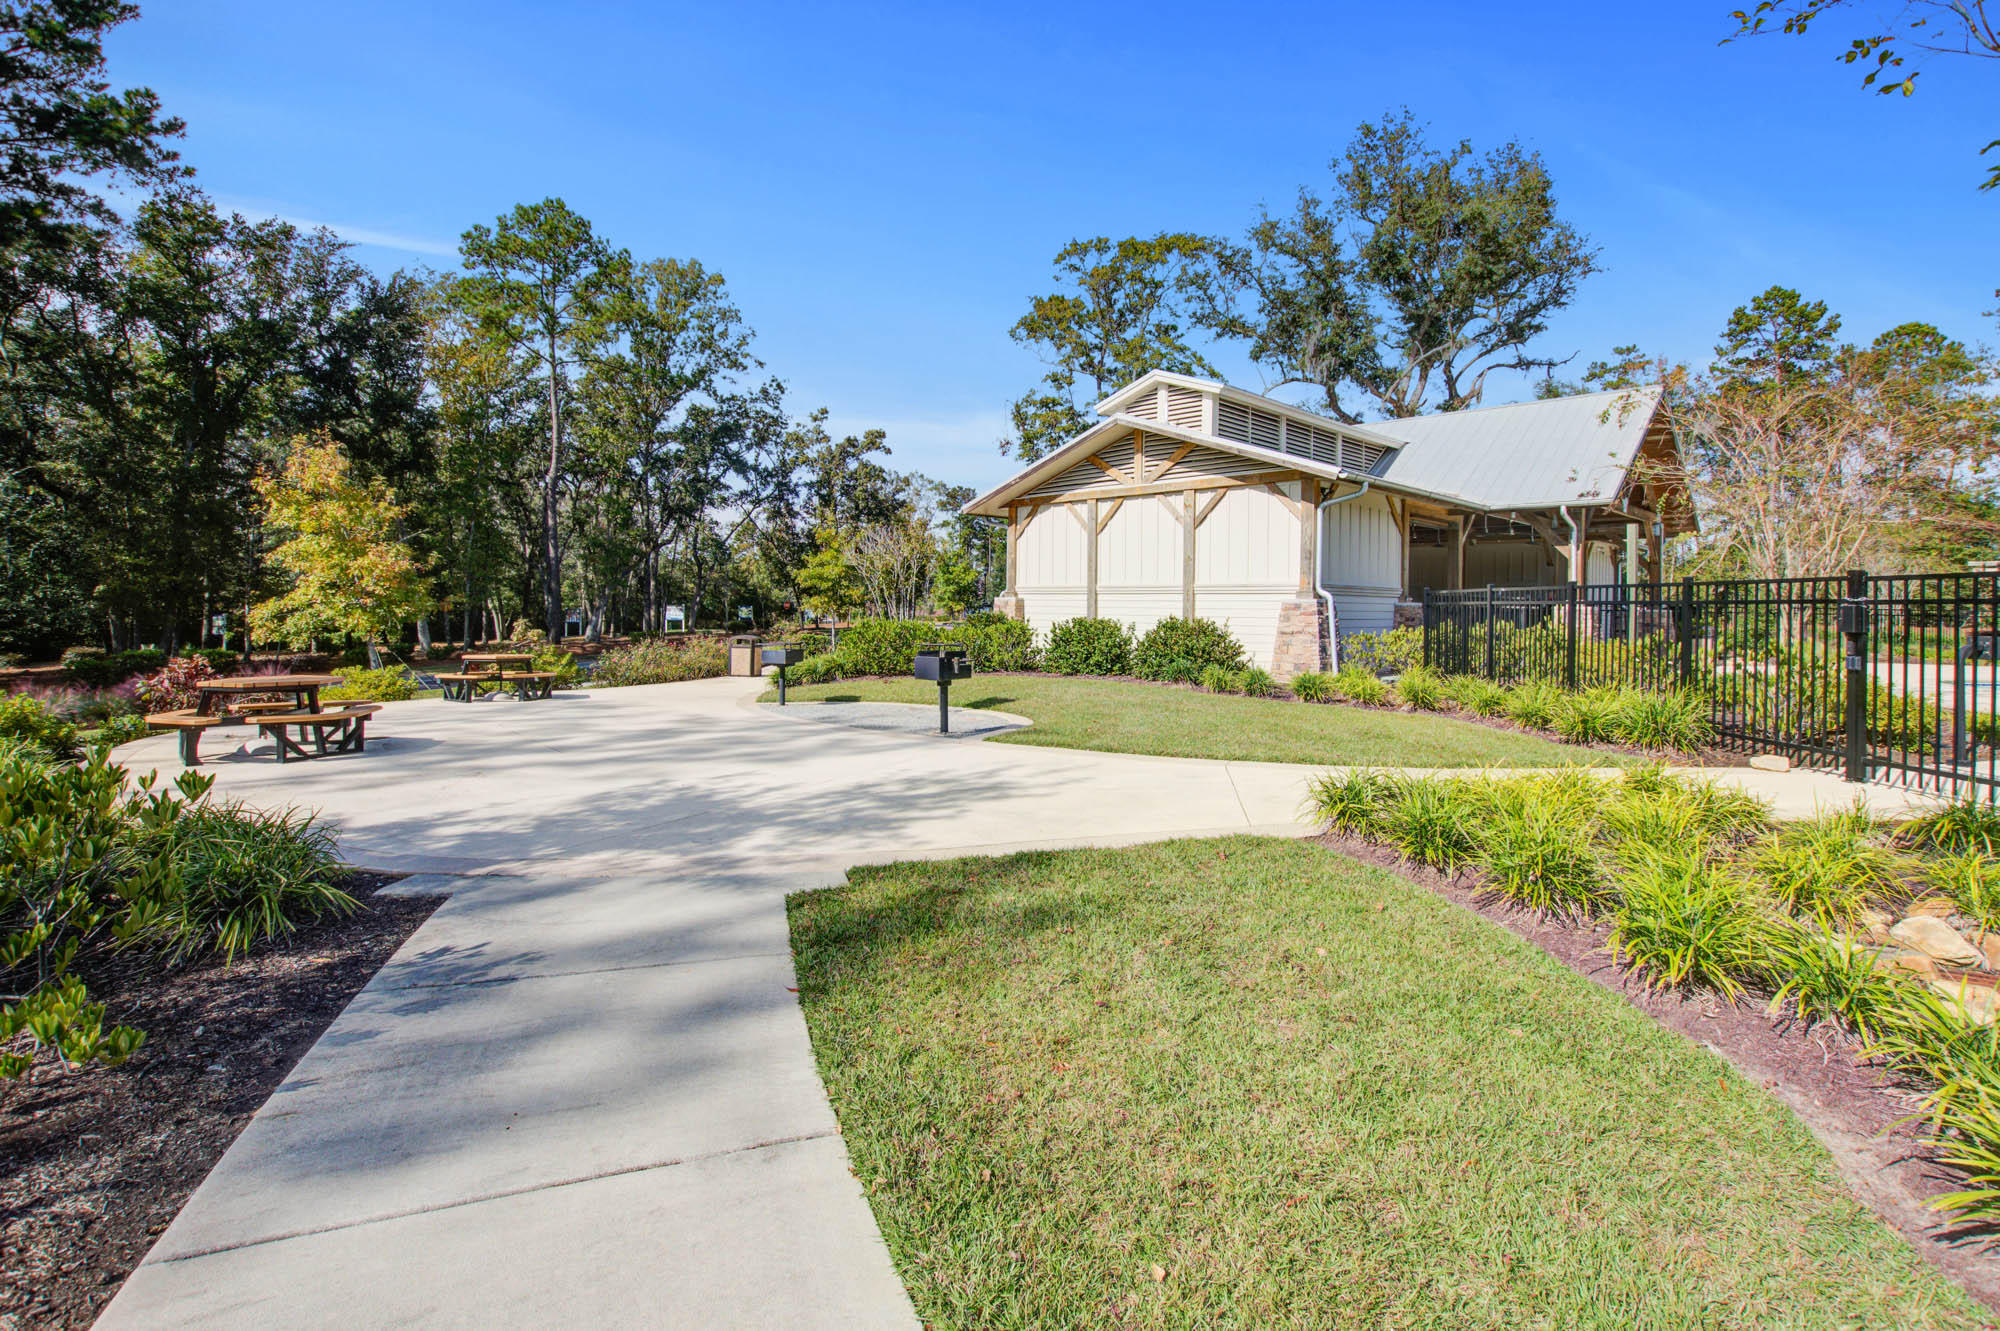 Coosaw Preserve Homes For Sale - 9725 Black Willow, Ladson, SC - 27